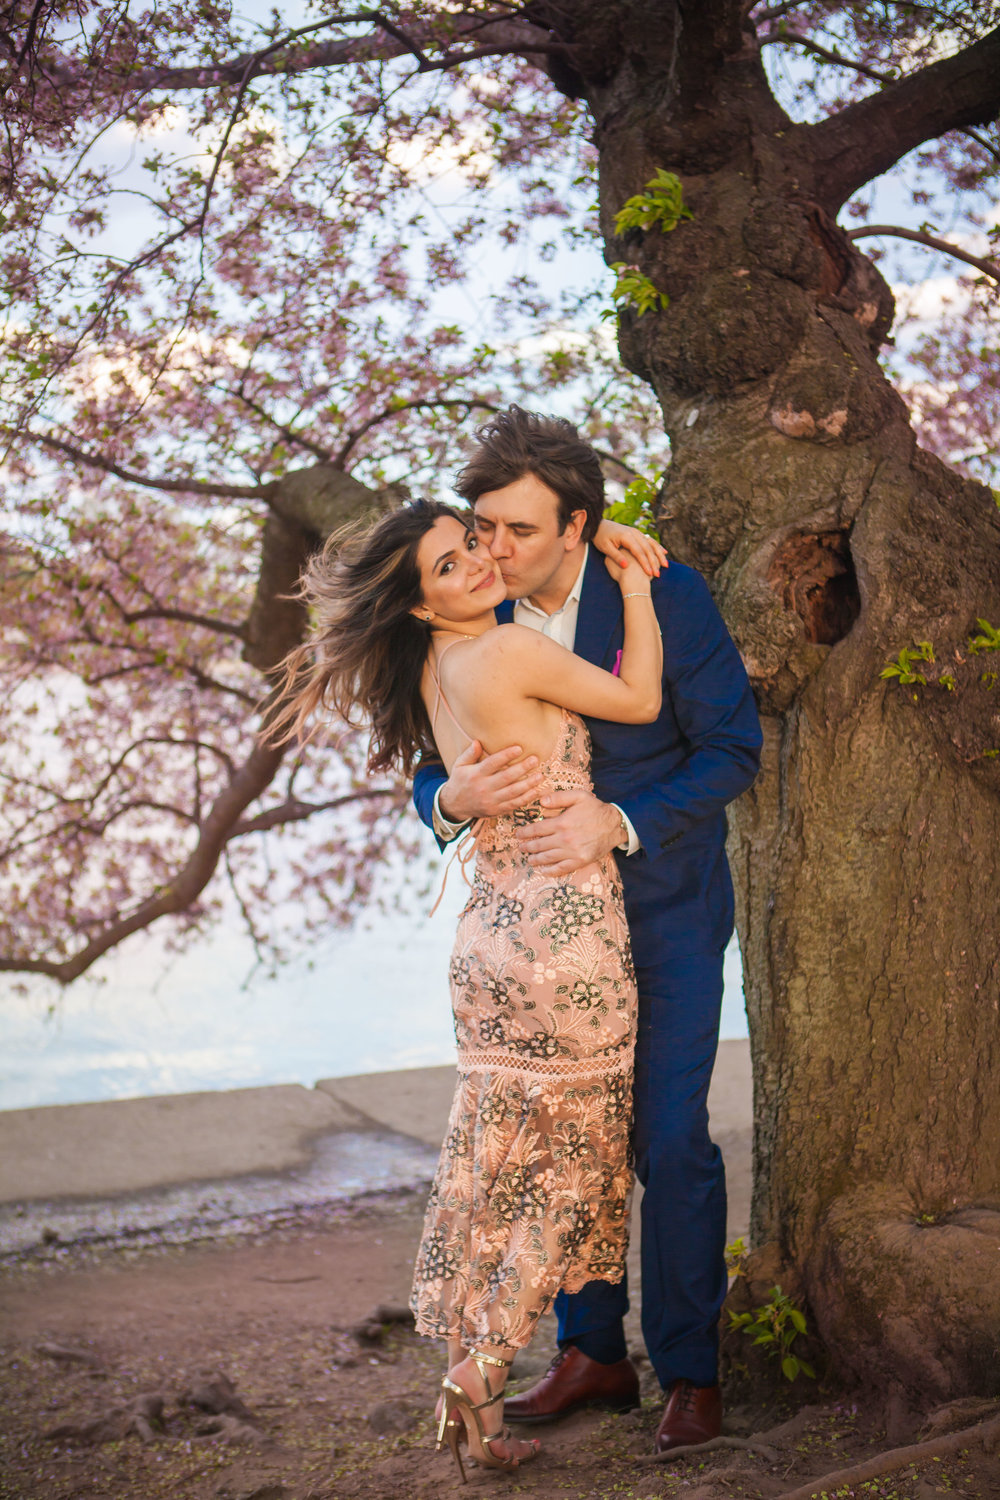 Hannah & Joe Cherry Blossom Engagement - 007.jpg